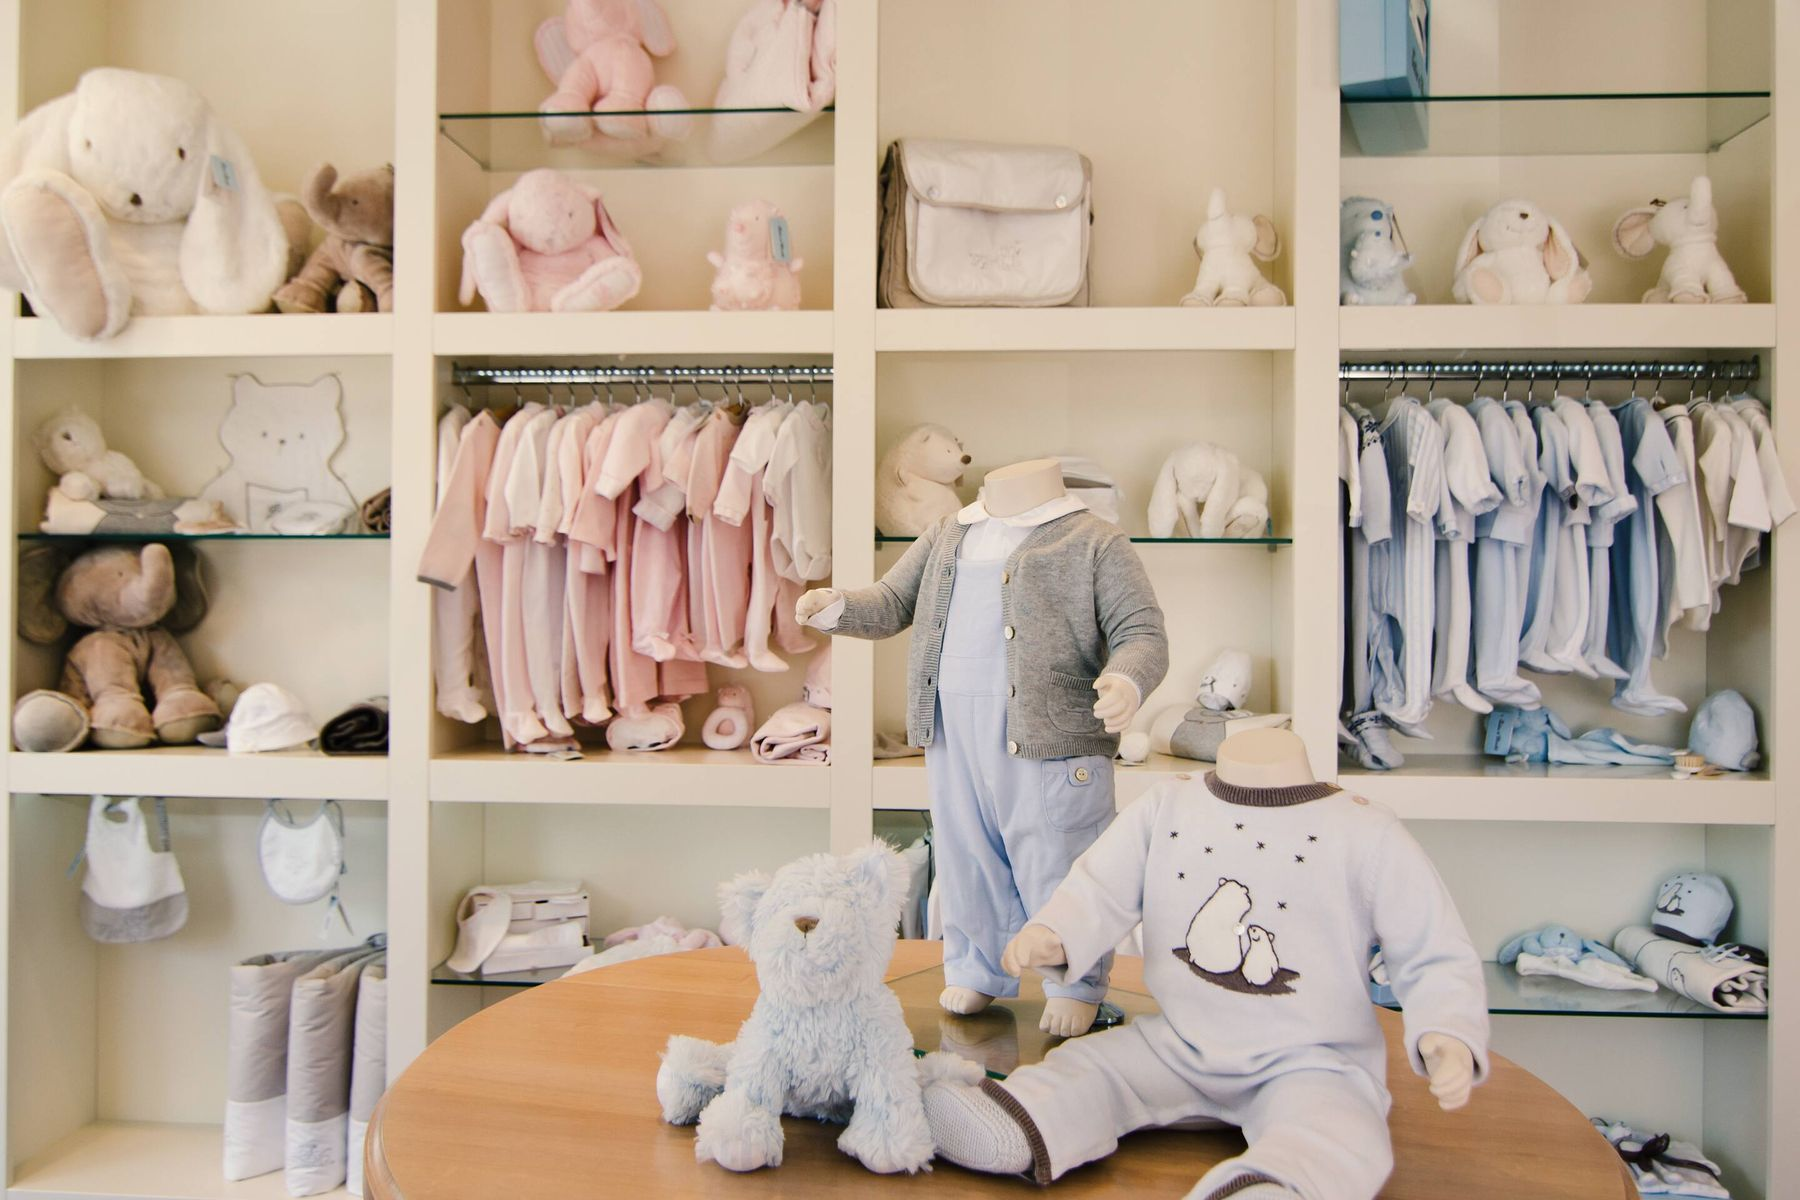 Easy Tips to Store Your Baby's Clothes for Their Younger Siblings